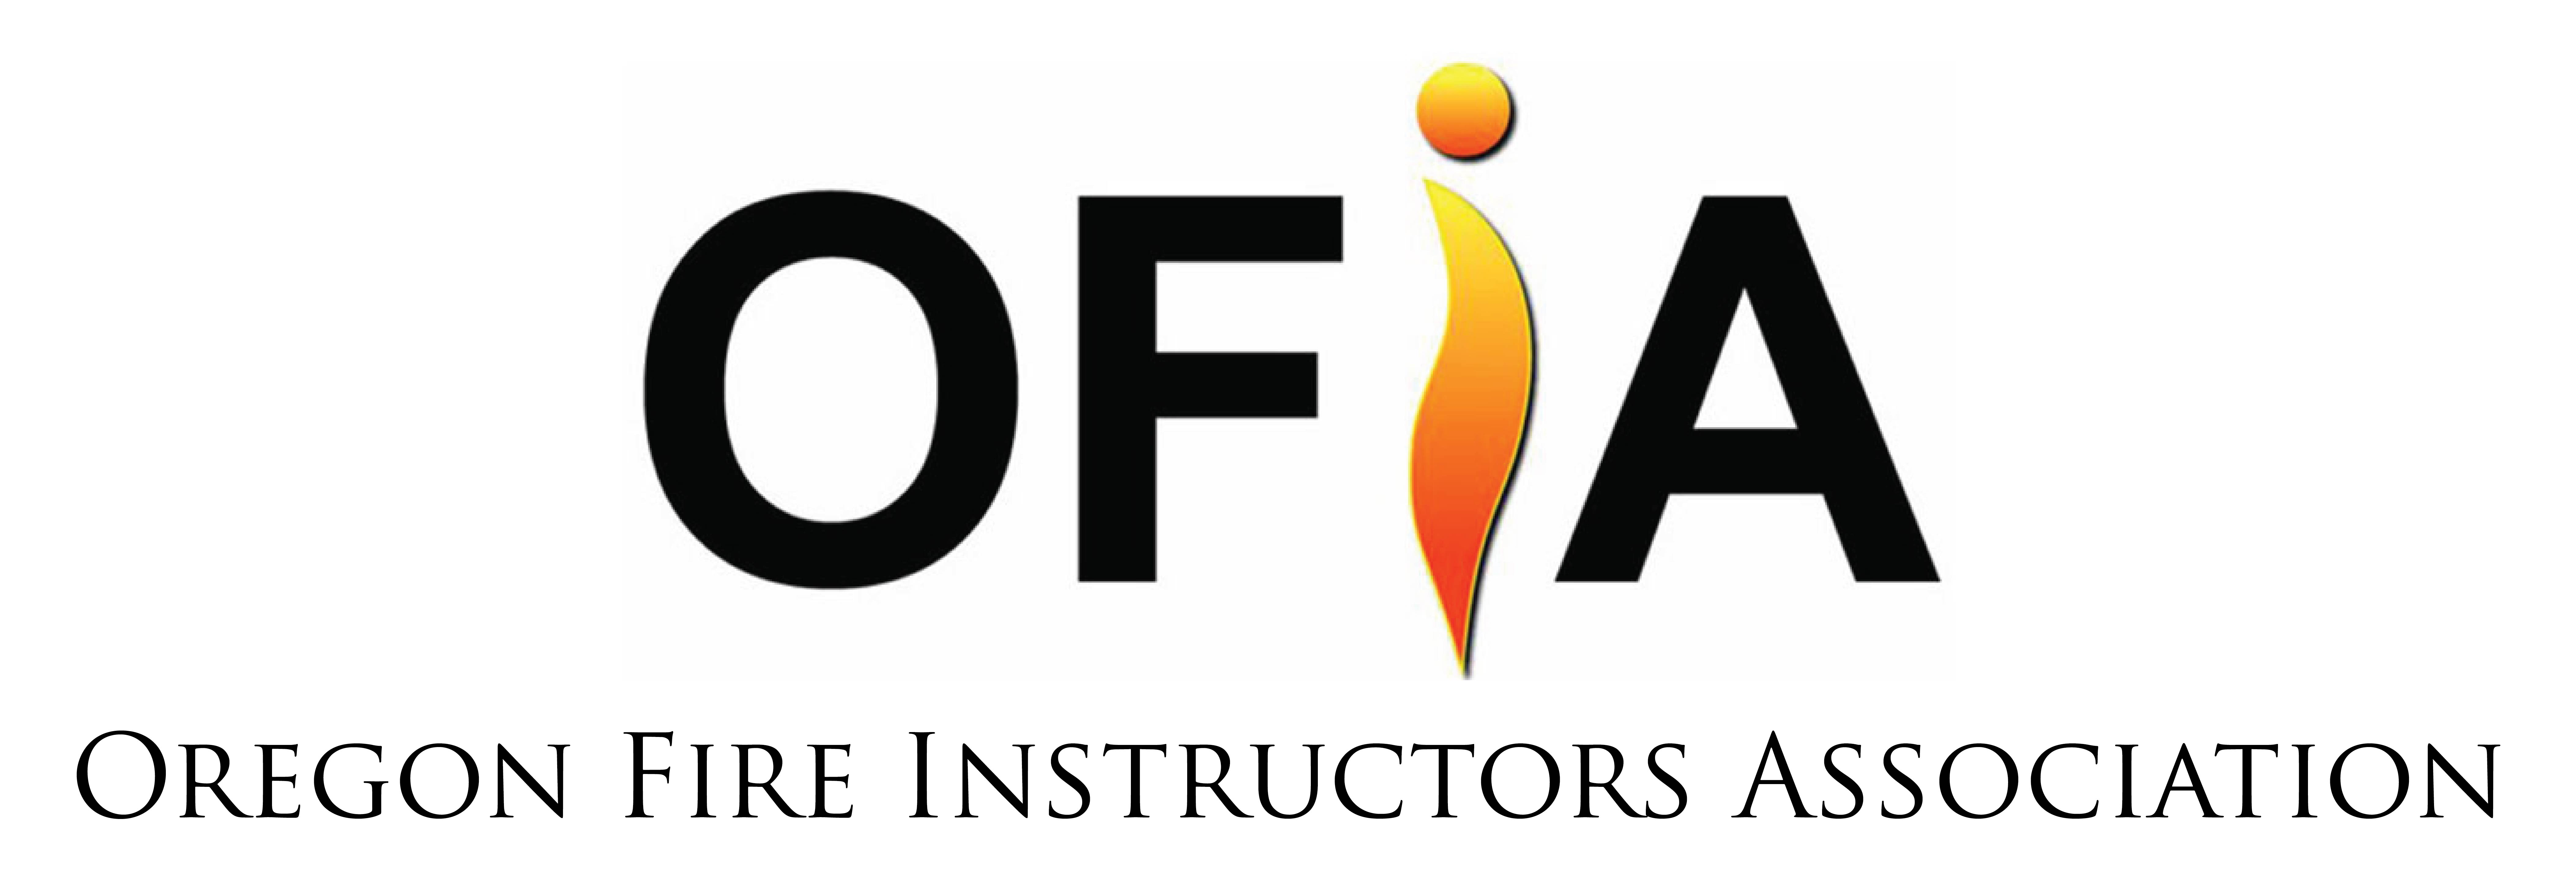 Oregon Fire Instructors Association